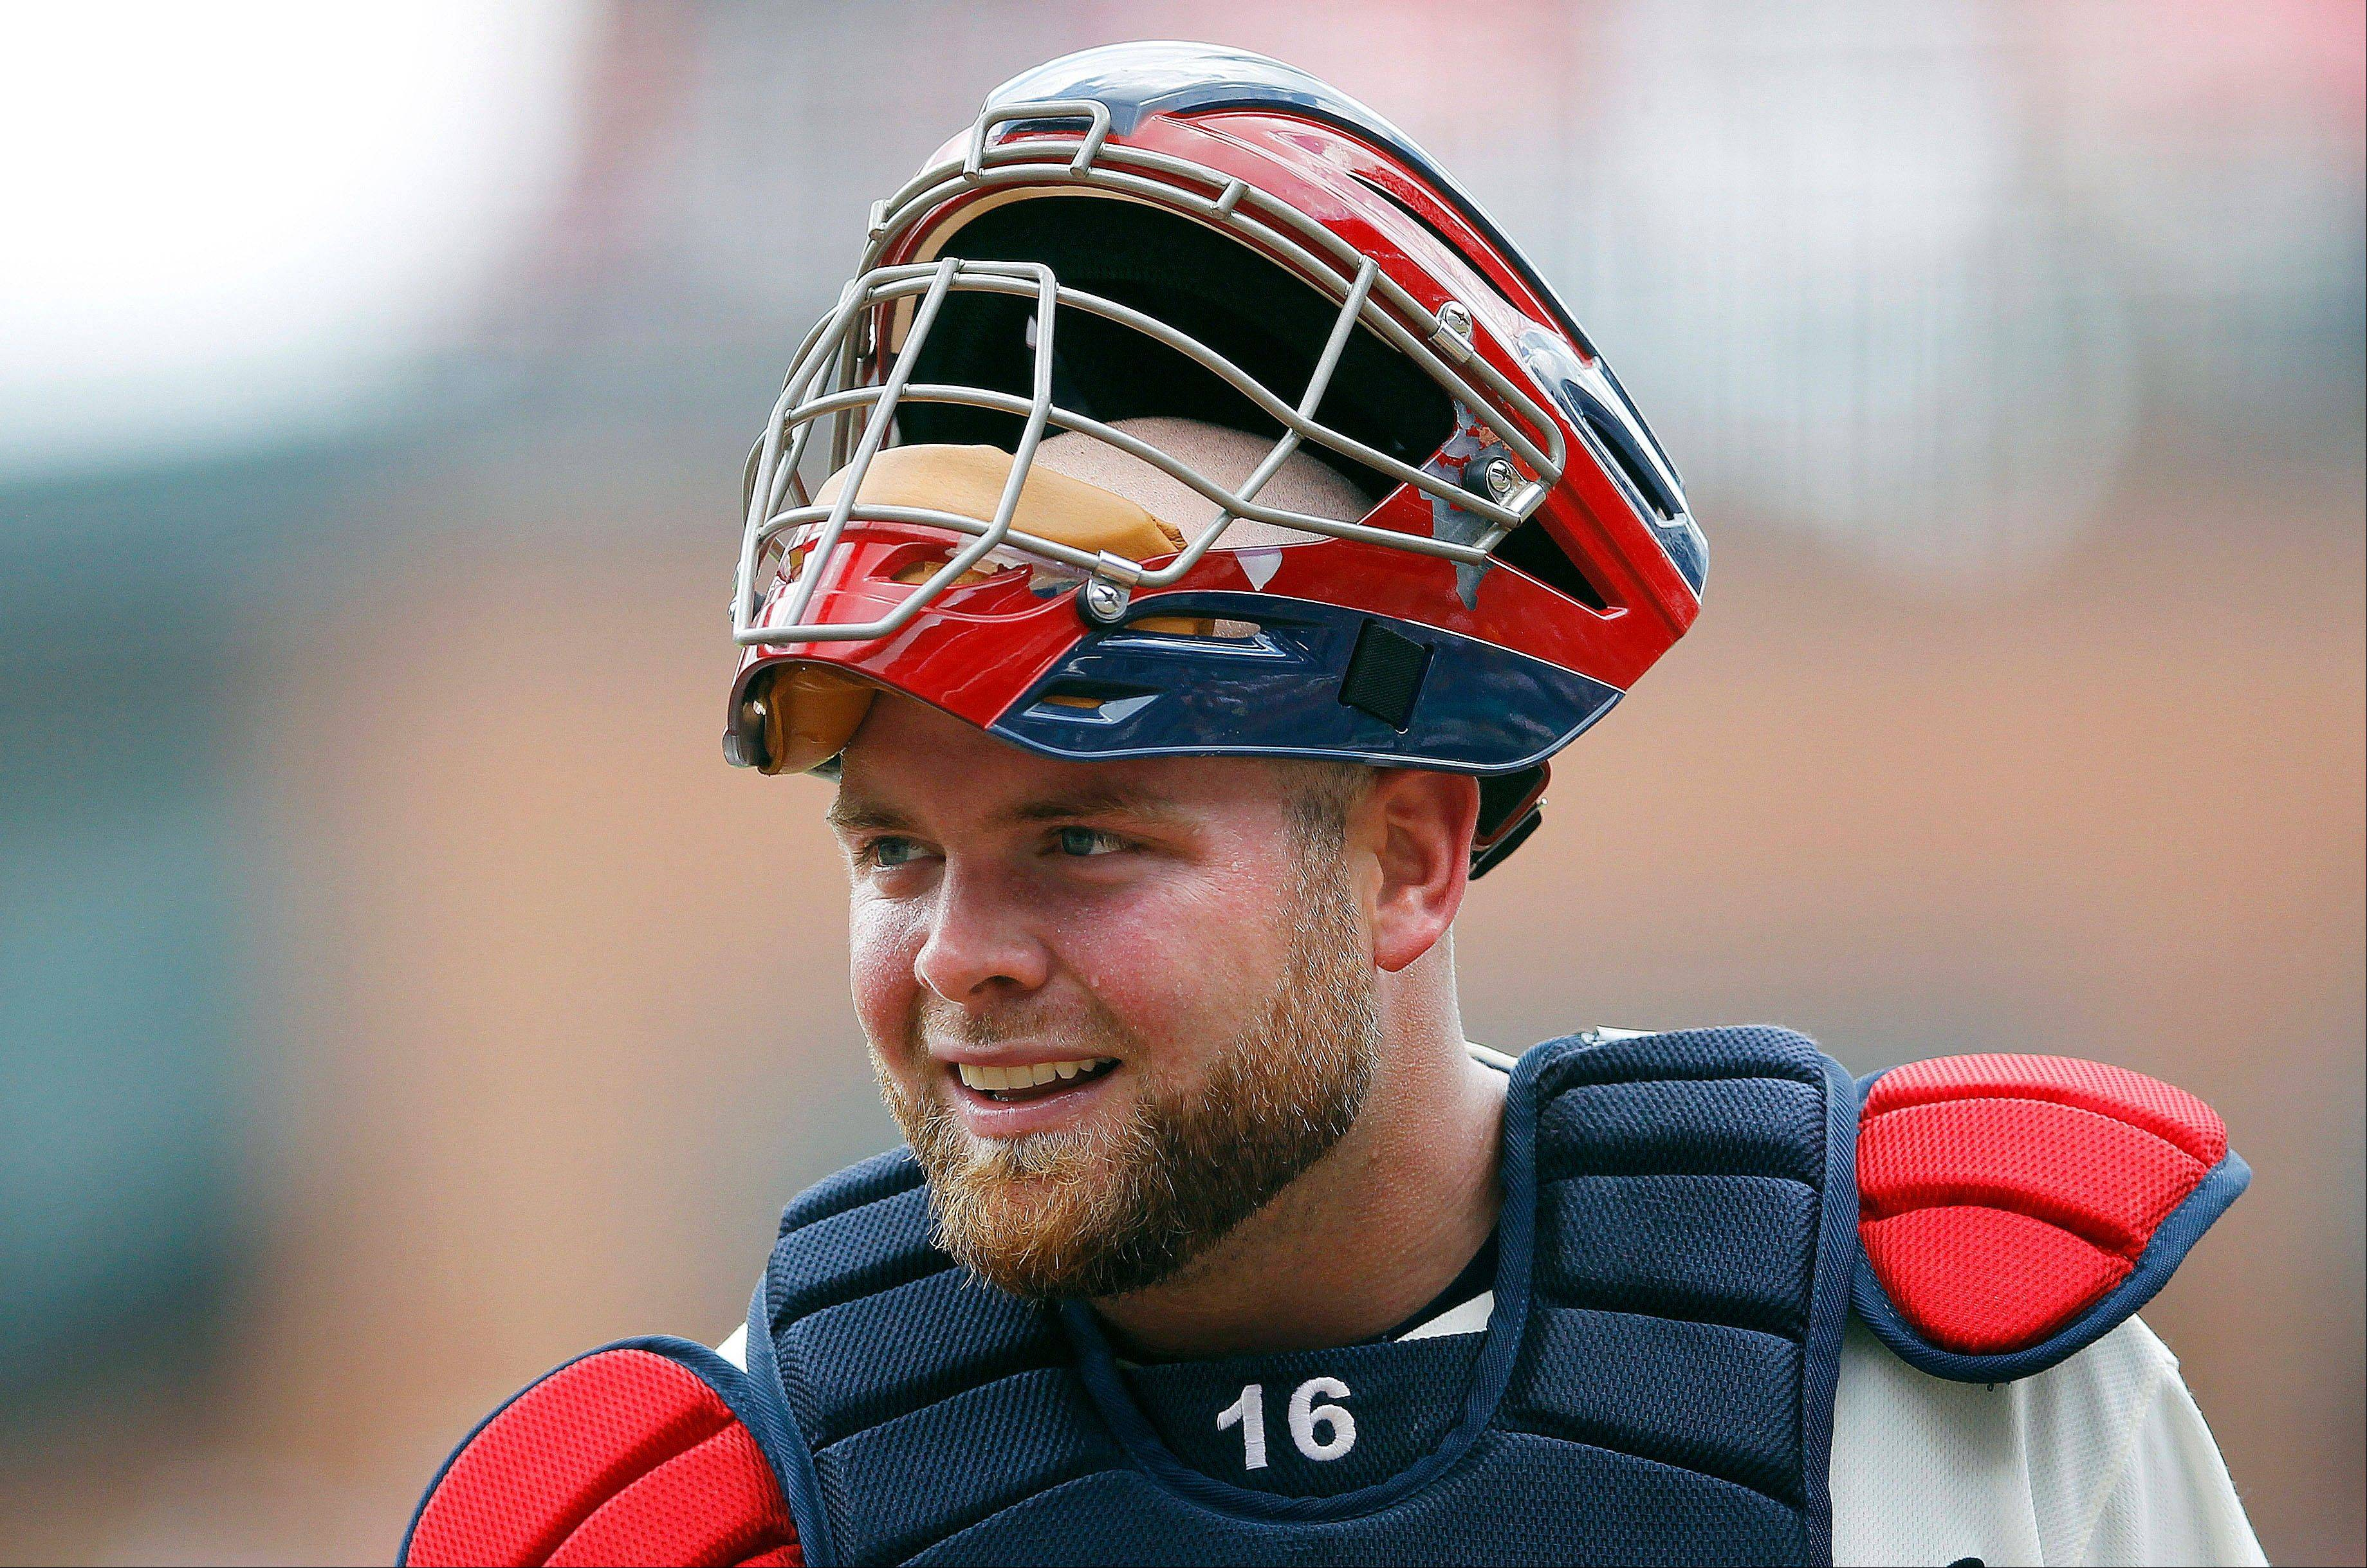 Catcher Brian McCann hit .256 with 57 RBIs in 356 at-bats for Atlanta this season.